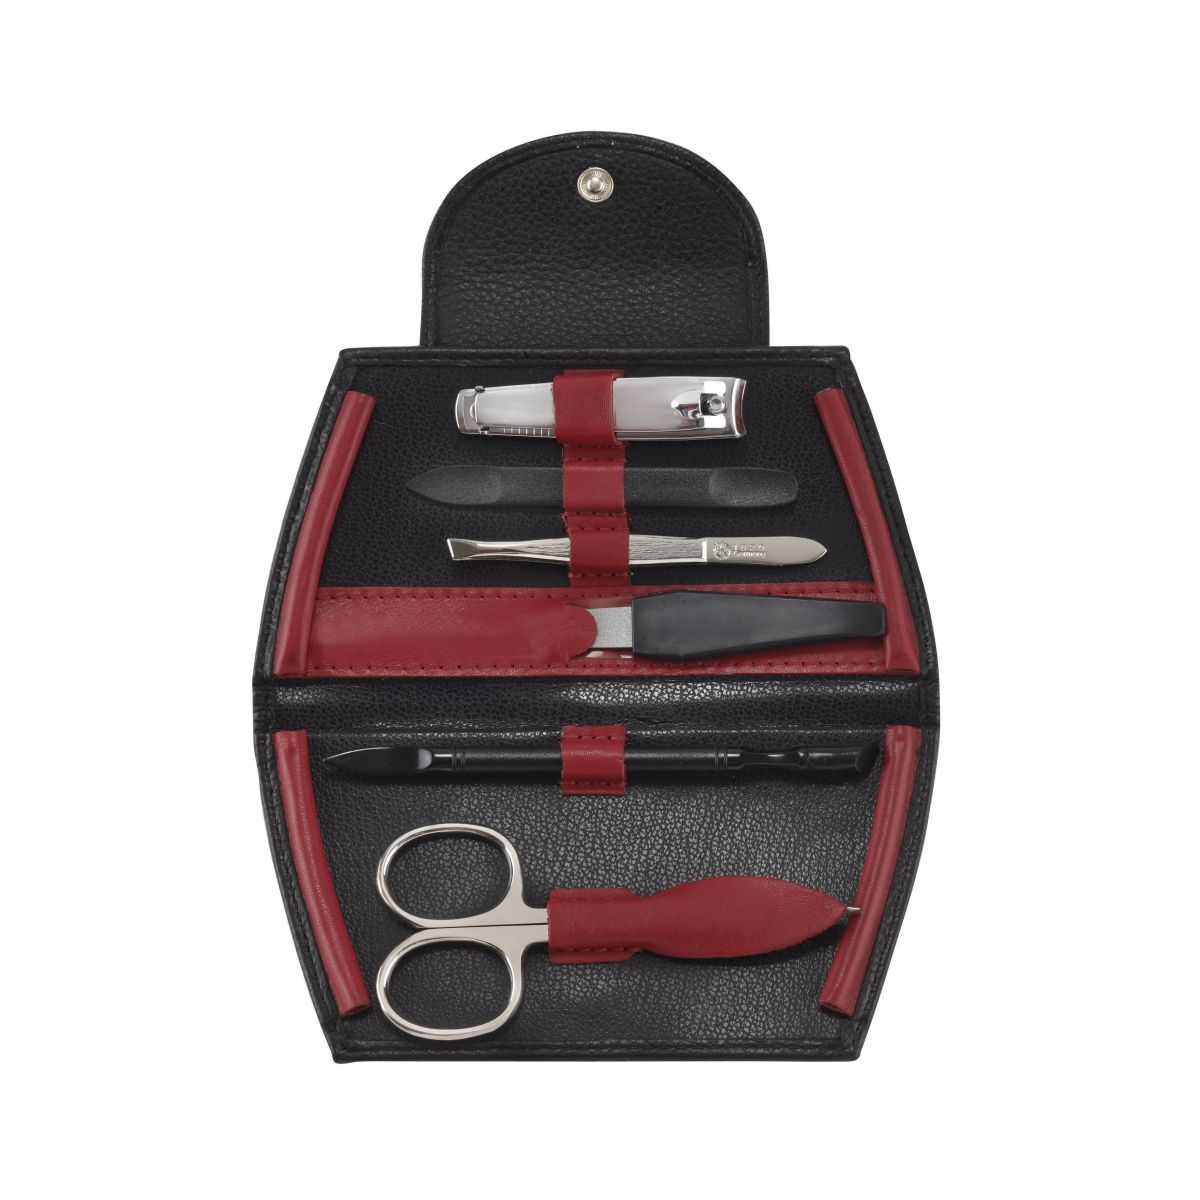 73043 red 1 - Luxurious German Manicure with Precision Solingen Implements - 73043B/RED